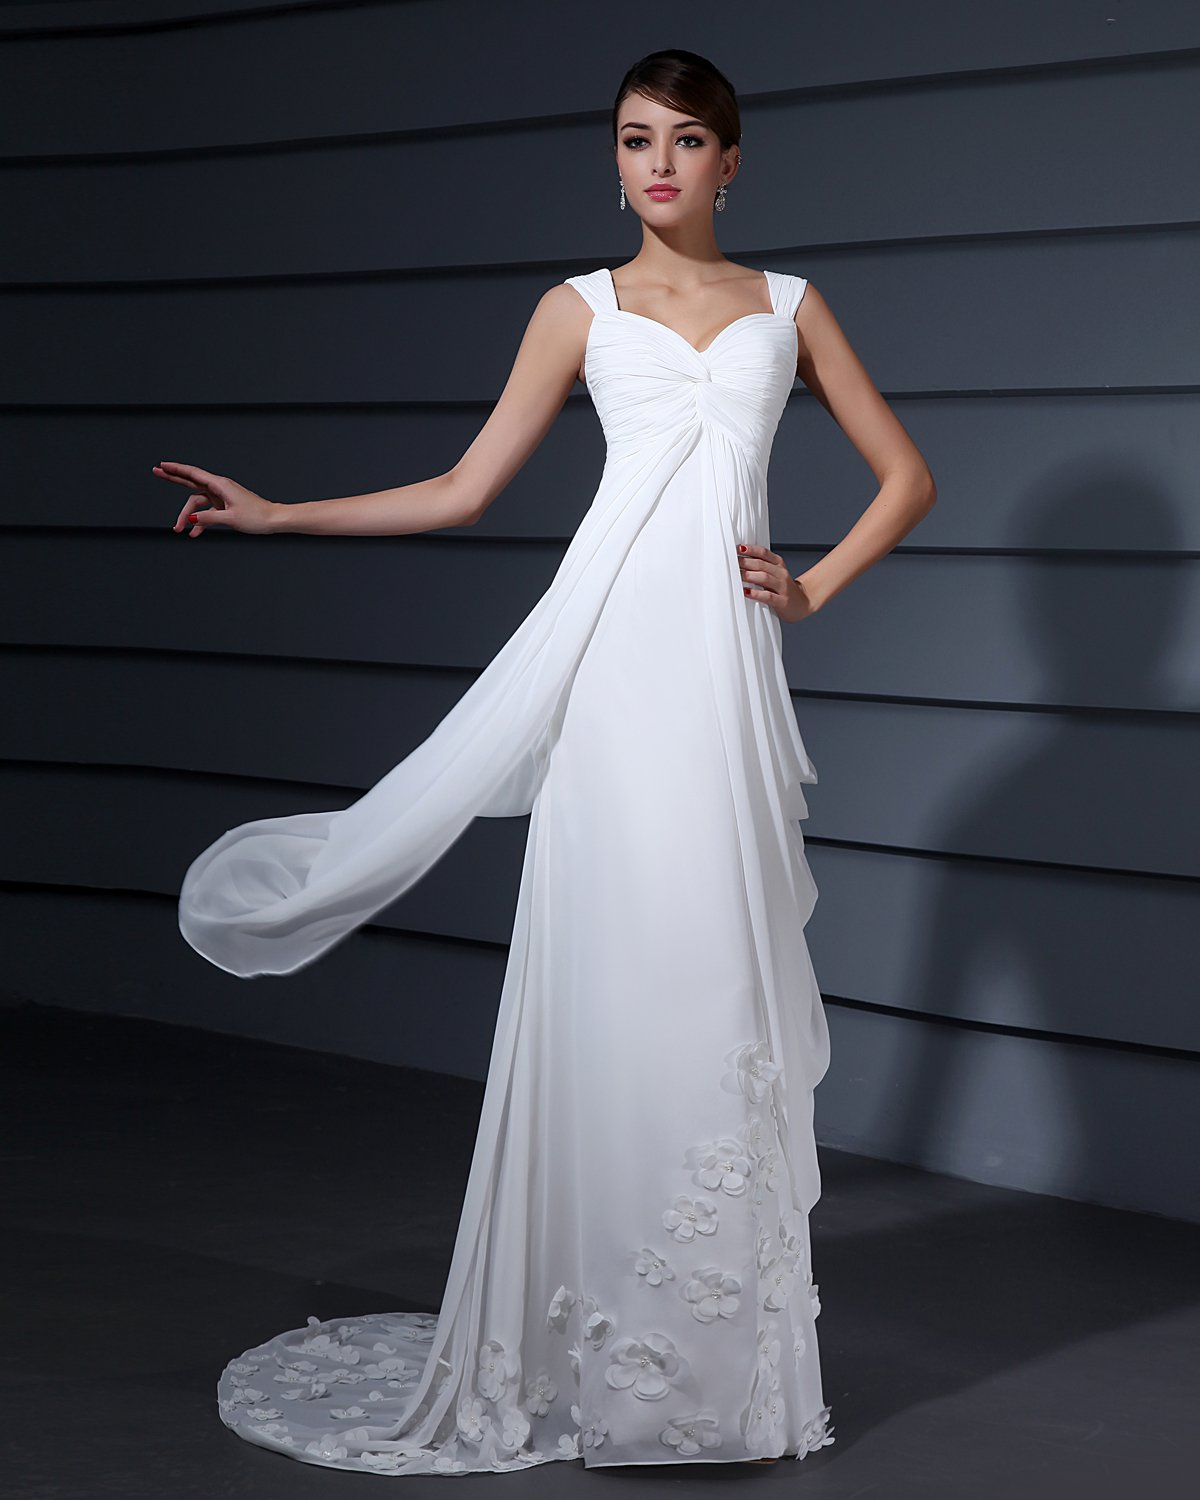 Shoulder Straps Applique Ruffle Floor Length Chiffon Woman Empire Wedding Dress